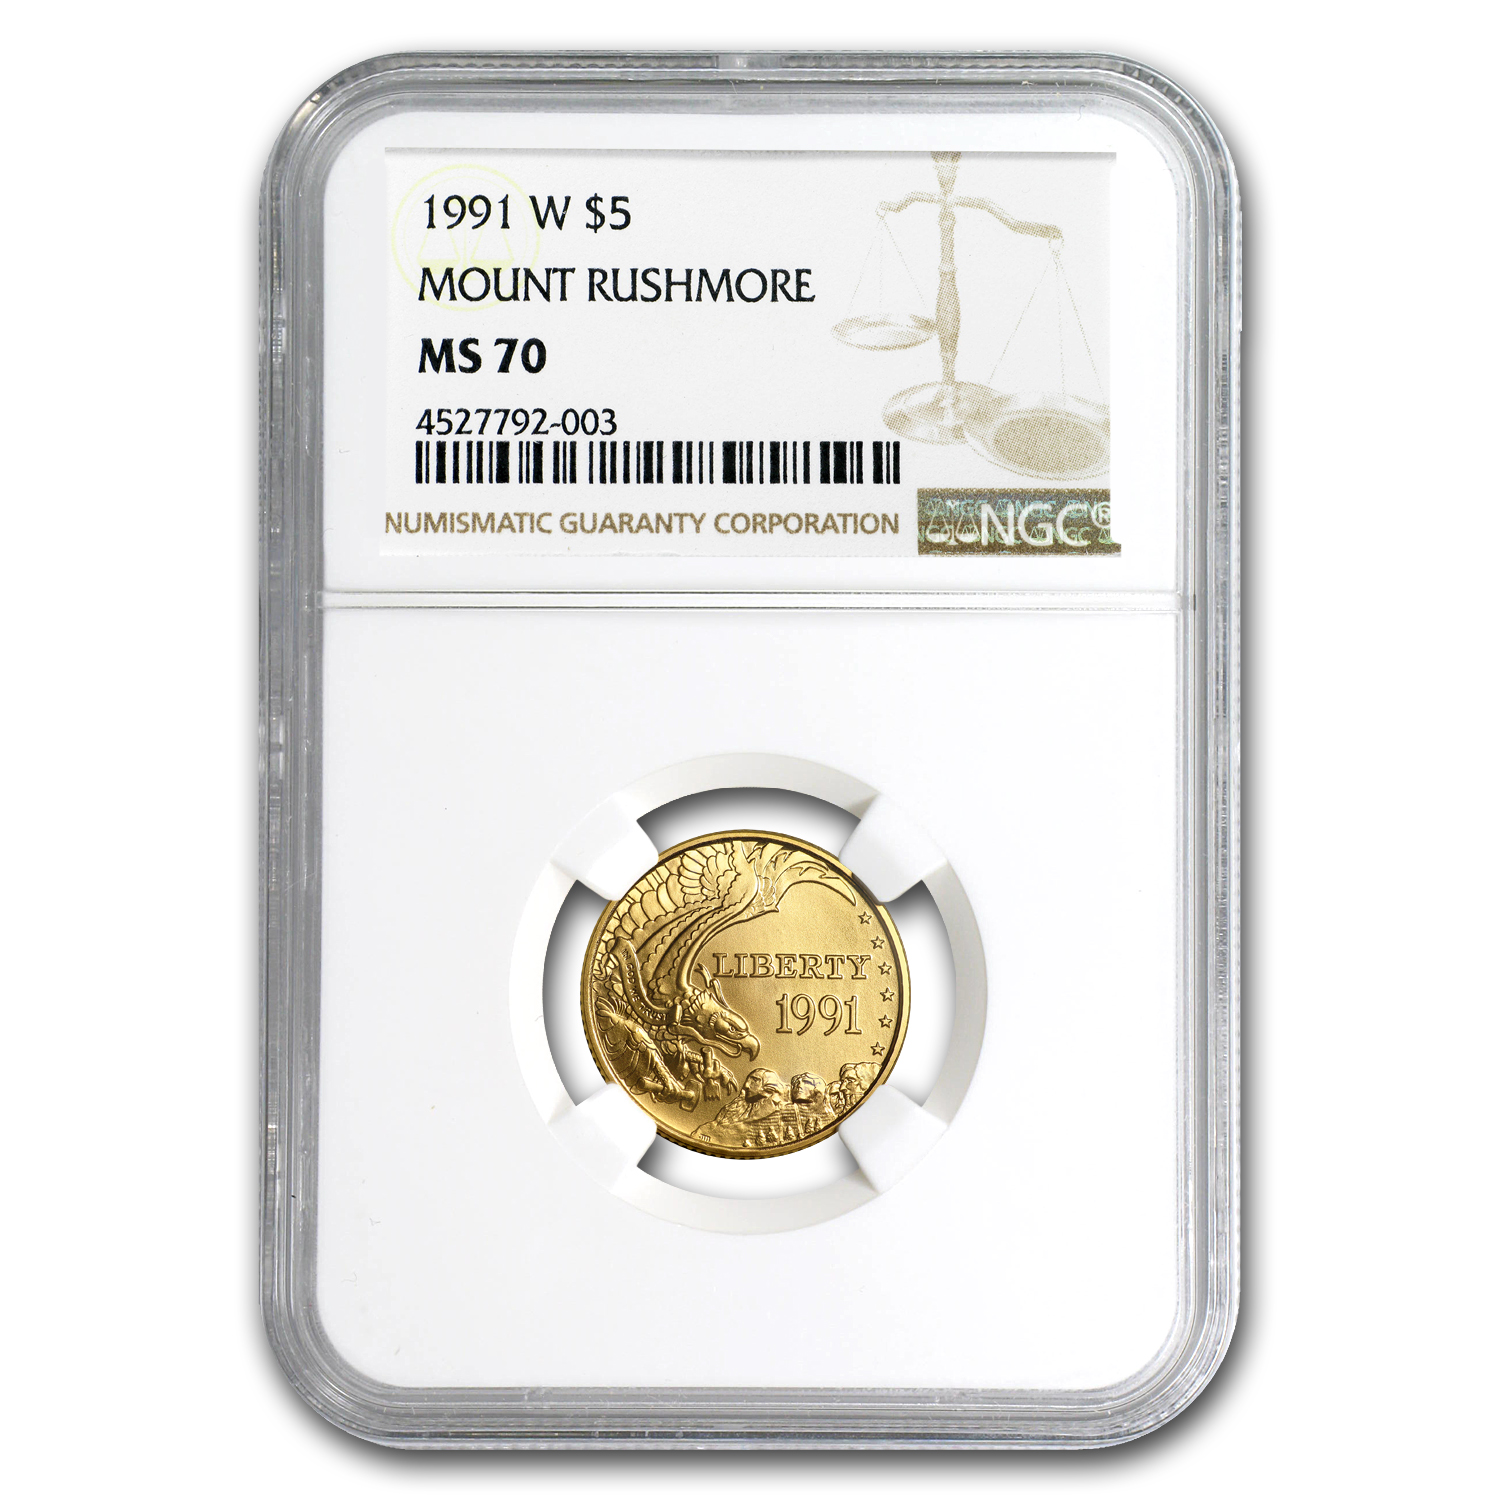 1991-W Gold $5 Commem Mount Rushmore MS-70 NGC